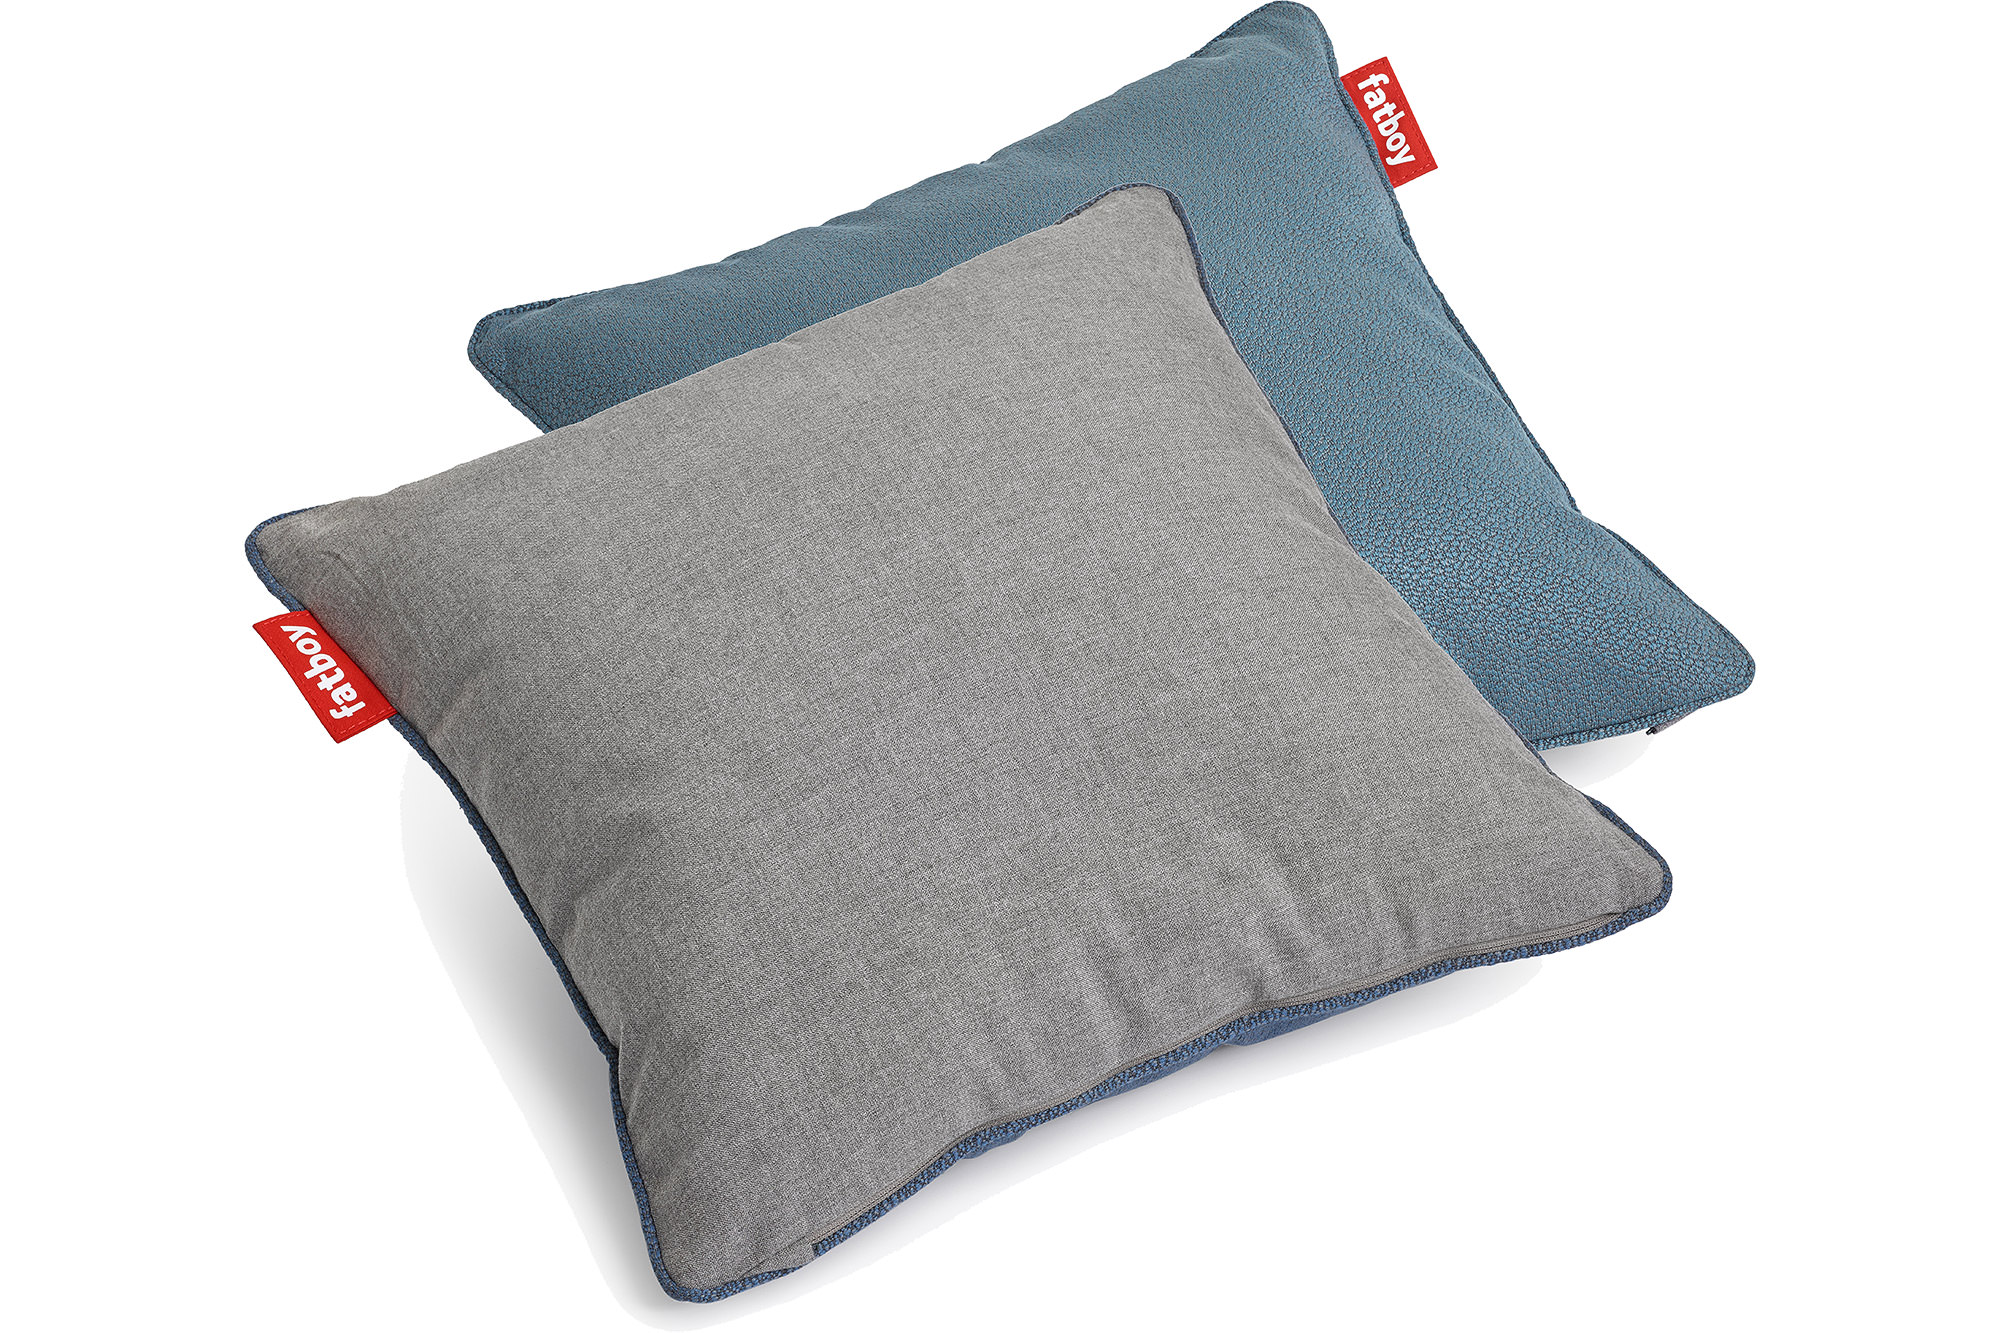 Fatboy Kissen Fatboy Square Pillow Duotone